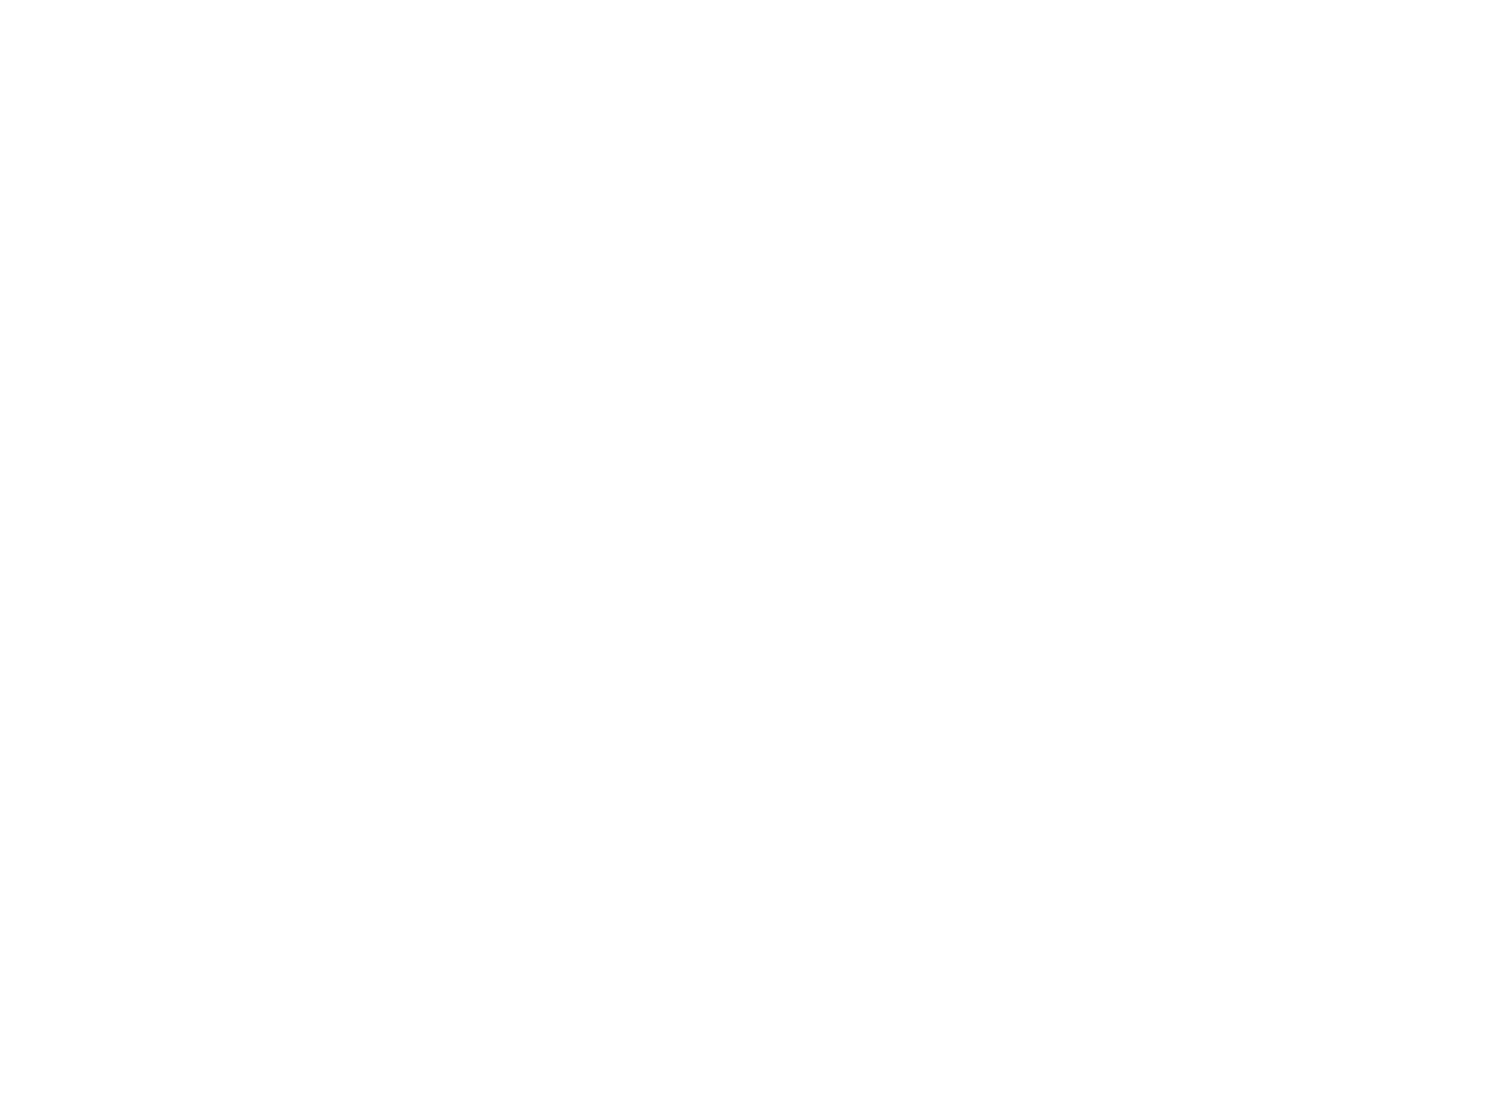 #WordzUp